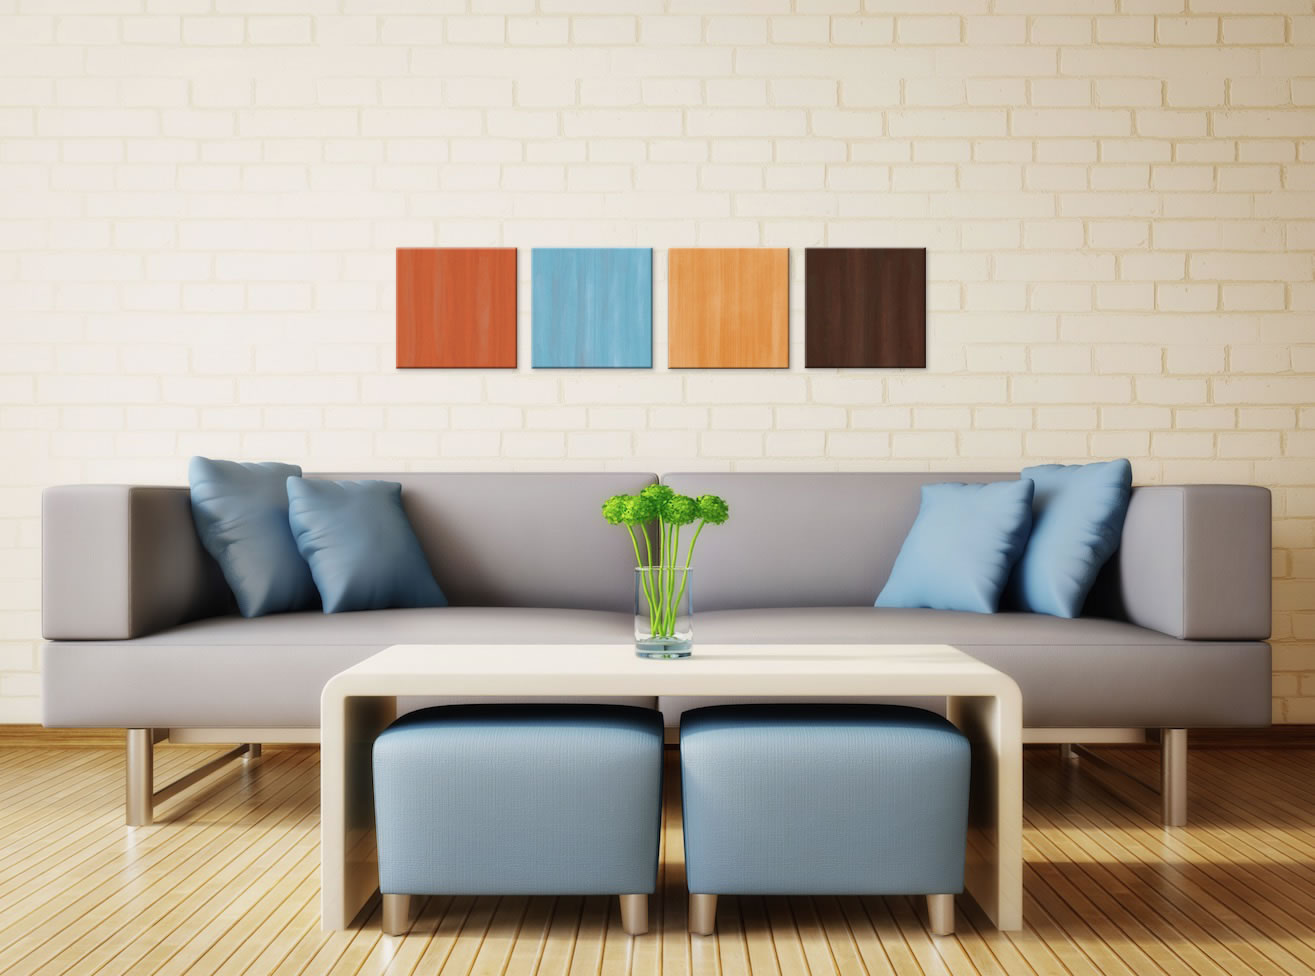 Cozy - Colorful Contemporary Accents by Celeste Reiter - Lifestyle Image